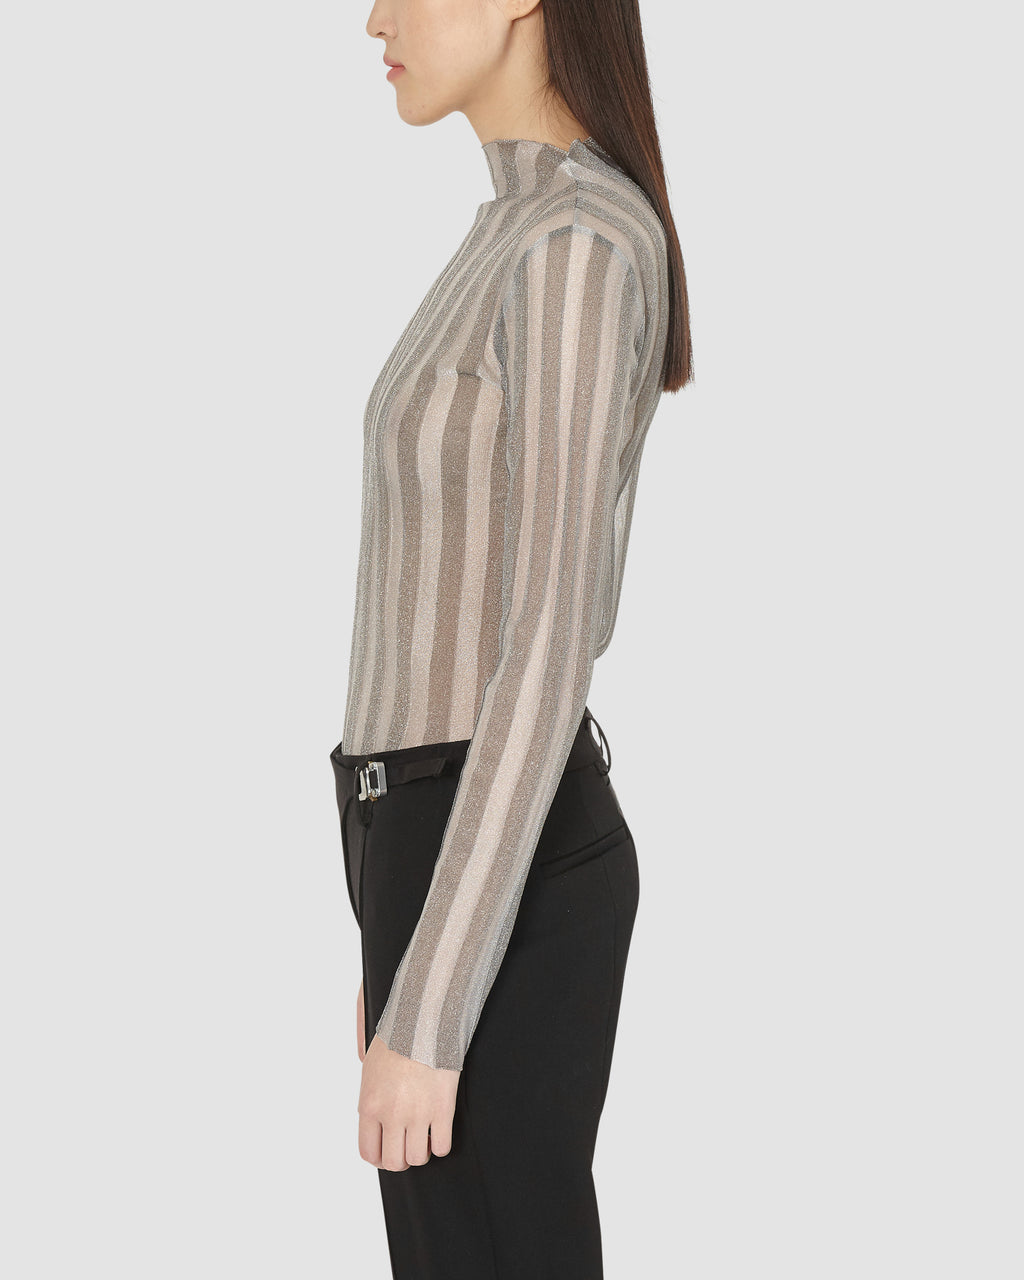 1017 ALYX 9SM | SEISMIC RIBBED TOP | Top | DARK GREY/LIGHT GREY, Google Shopping, KNITWEAR, S20, S20EXSH, Top, Woman, WOMEN